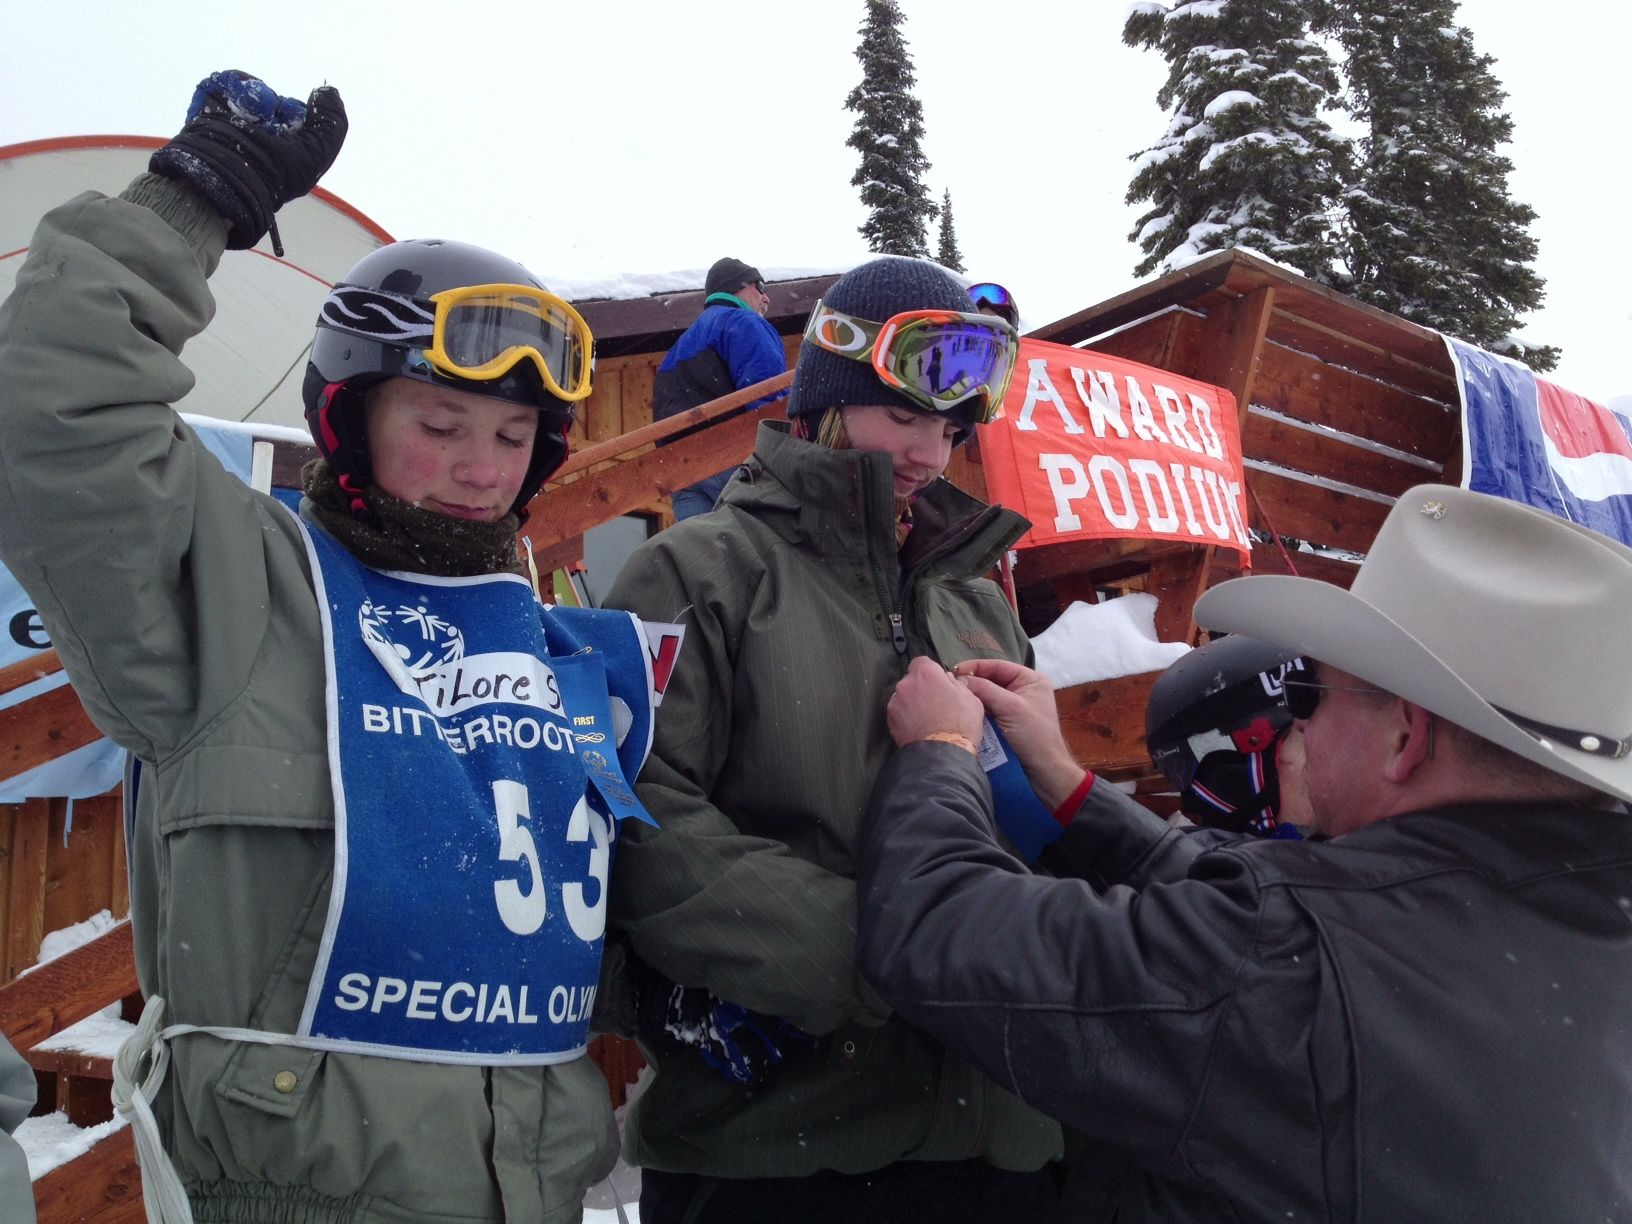 Special Olympians celebrate their wins- Bitterroot Special Olympics, Lost Trail Pass, February 2013